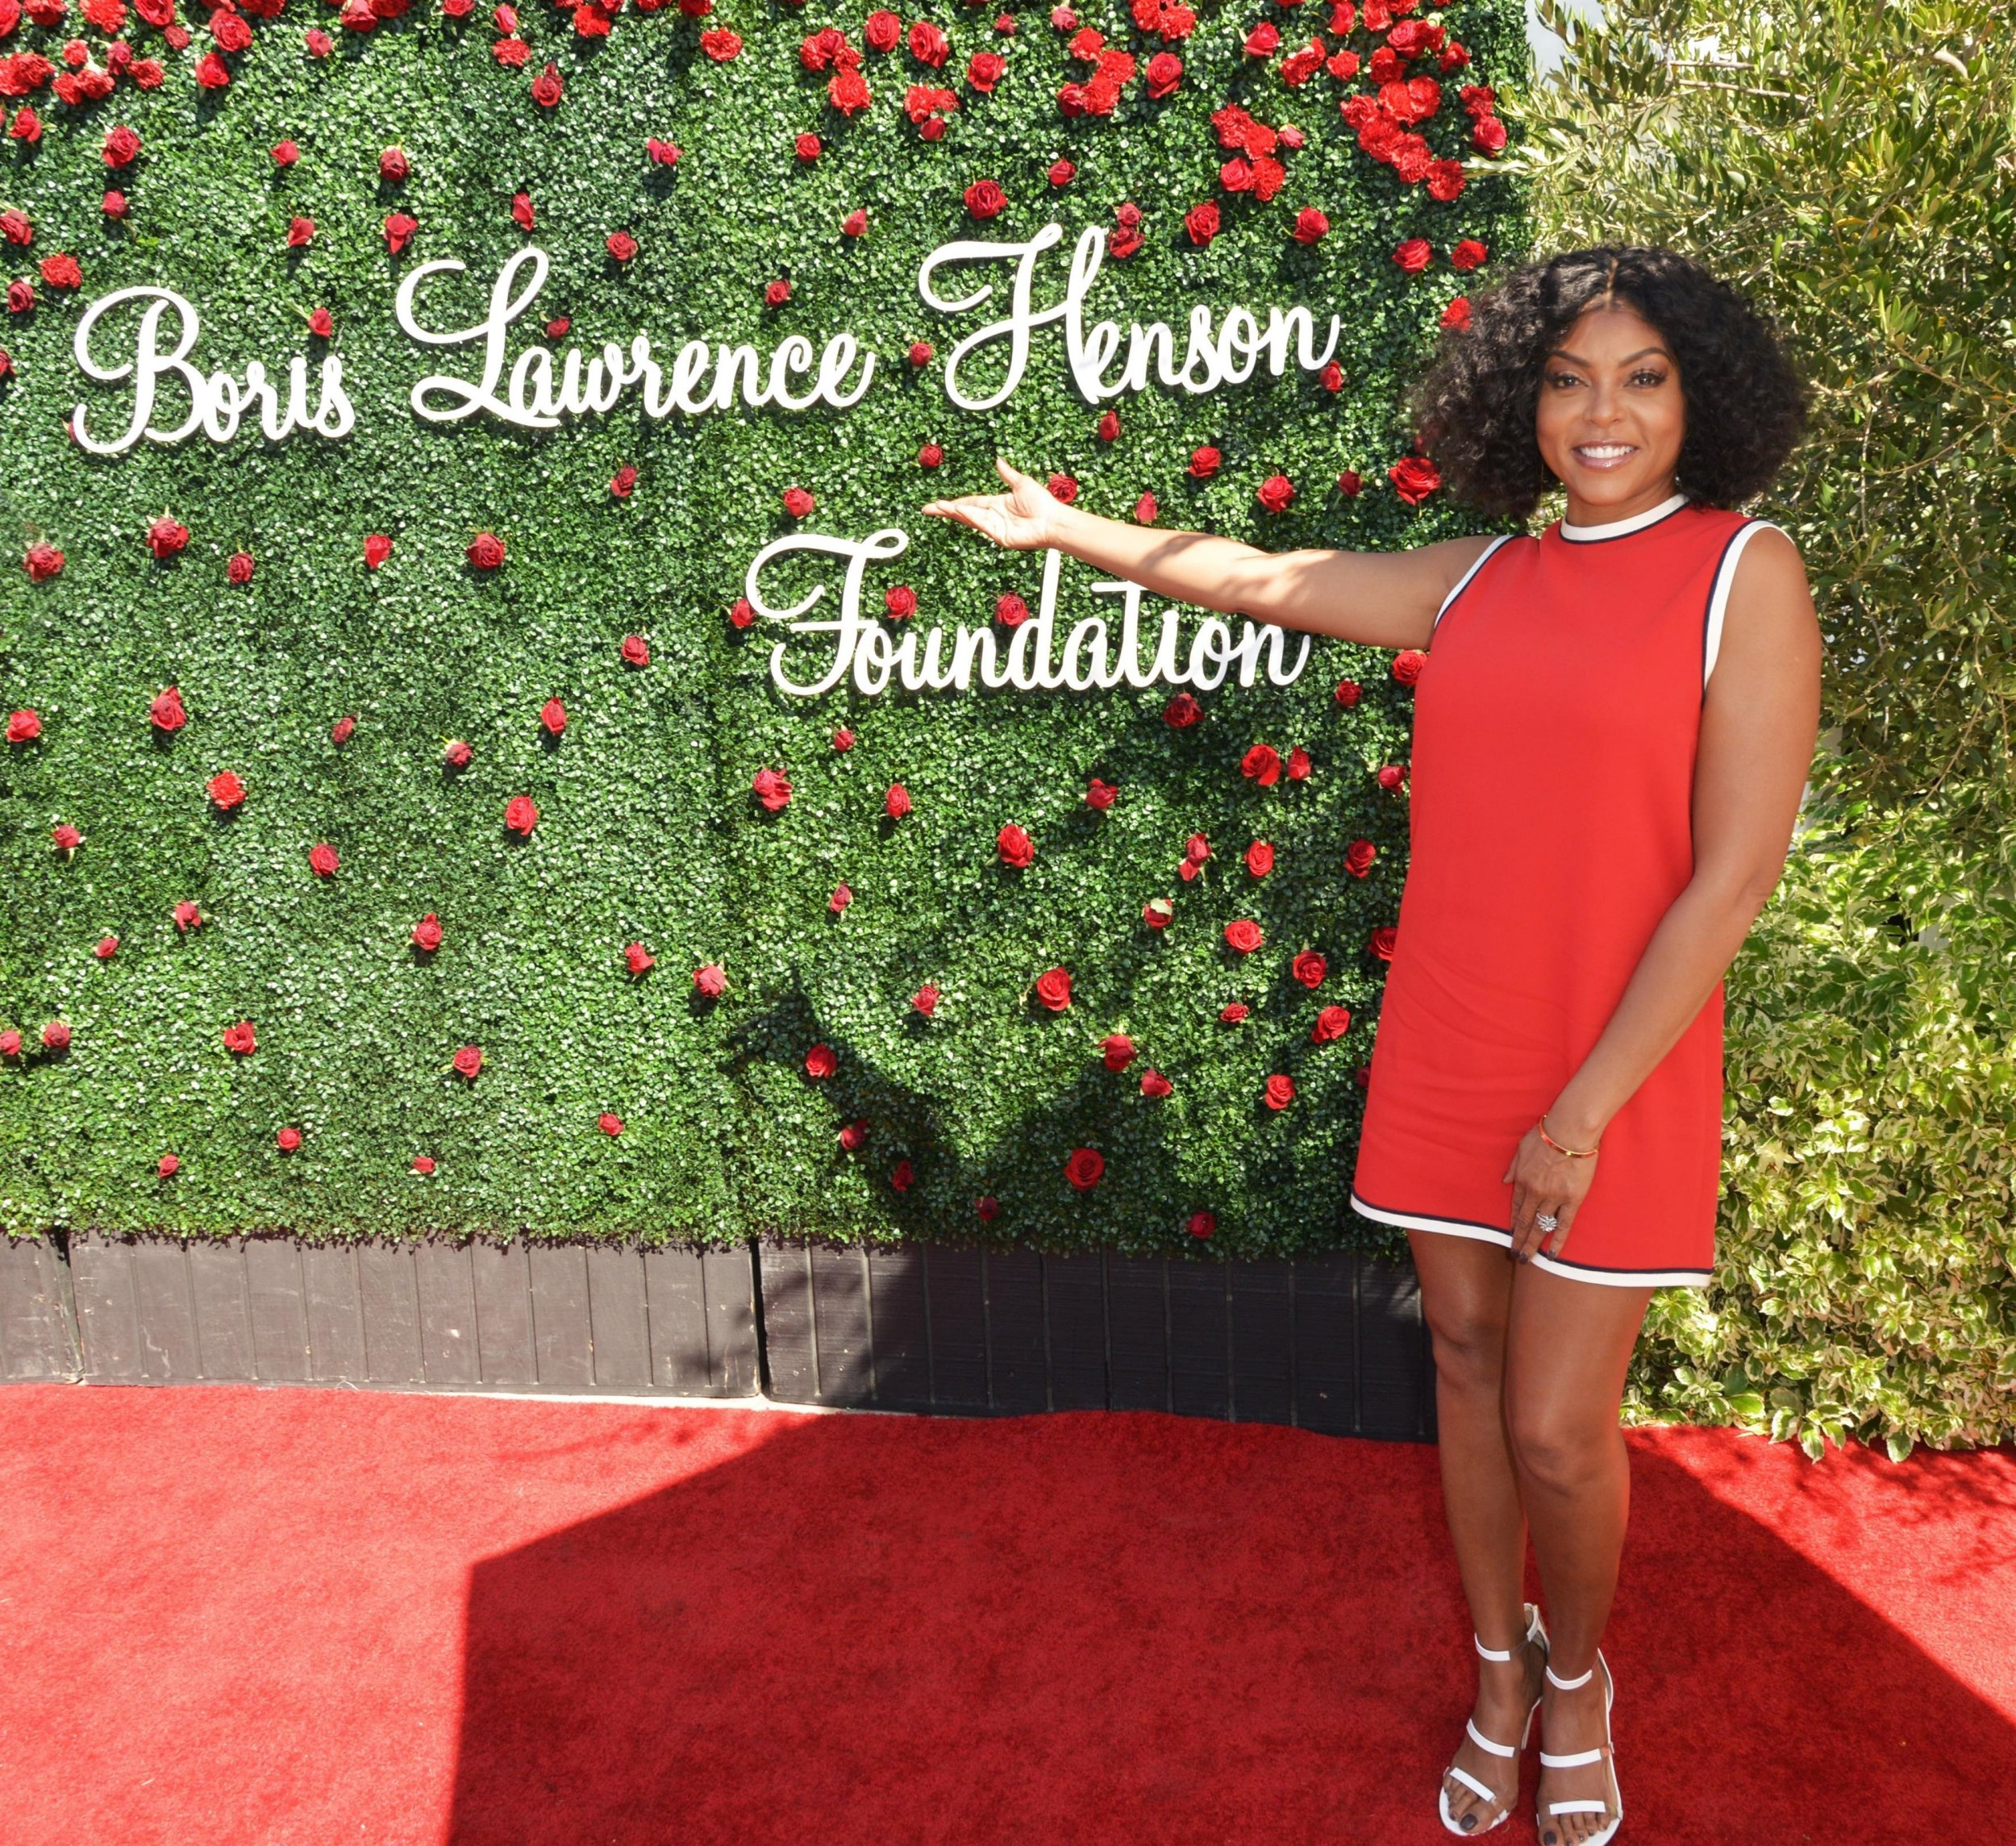 Beverly Hills, CA - Guests pose at Taraji???s Boutique of Hope launch of The Boris Lawrence Henson Foundation held at a private location. Pictured: Taraji P. Henson BACKGRID USA 22 SEPTEMBER 2018 BYLINE MUST READ: MediaPunch / BACKGRID USA: +1 310 798 9111 / usasales@backgrid.com UK: +44 208 344 2007 / uksales@backgrid.com *UK Clients - Pictures Containing Children Please Pixelate Face Prior To Publication*